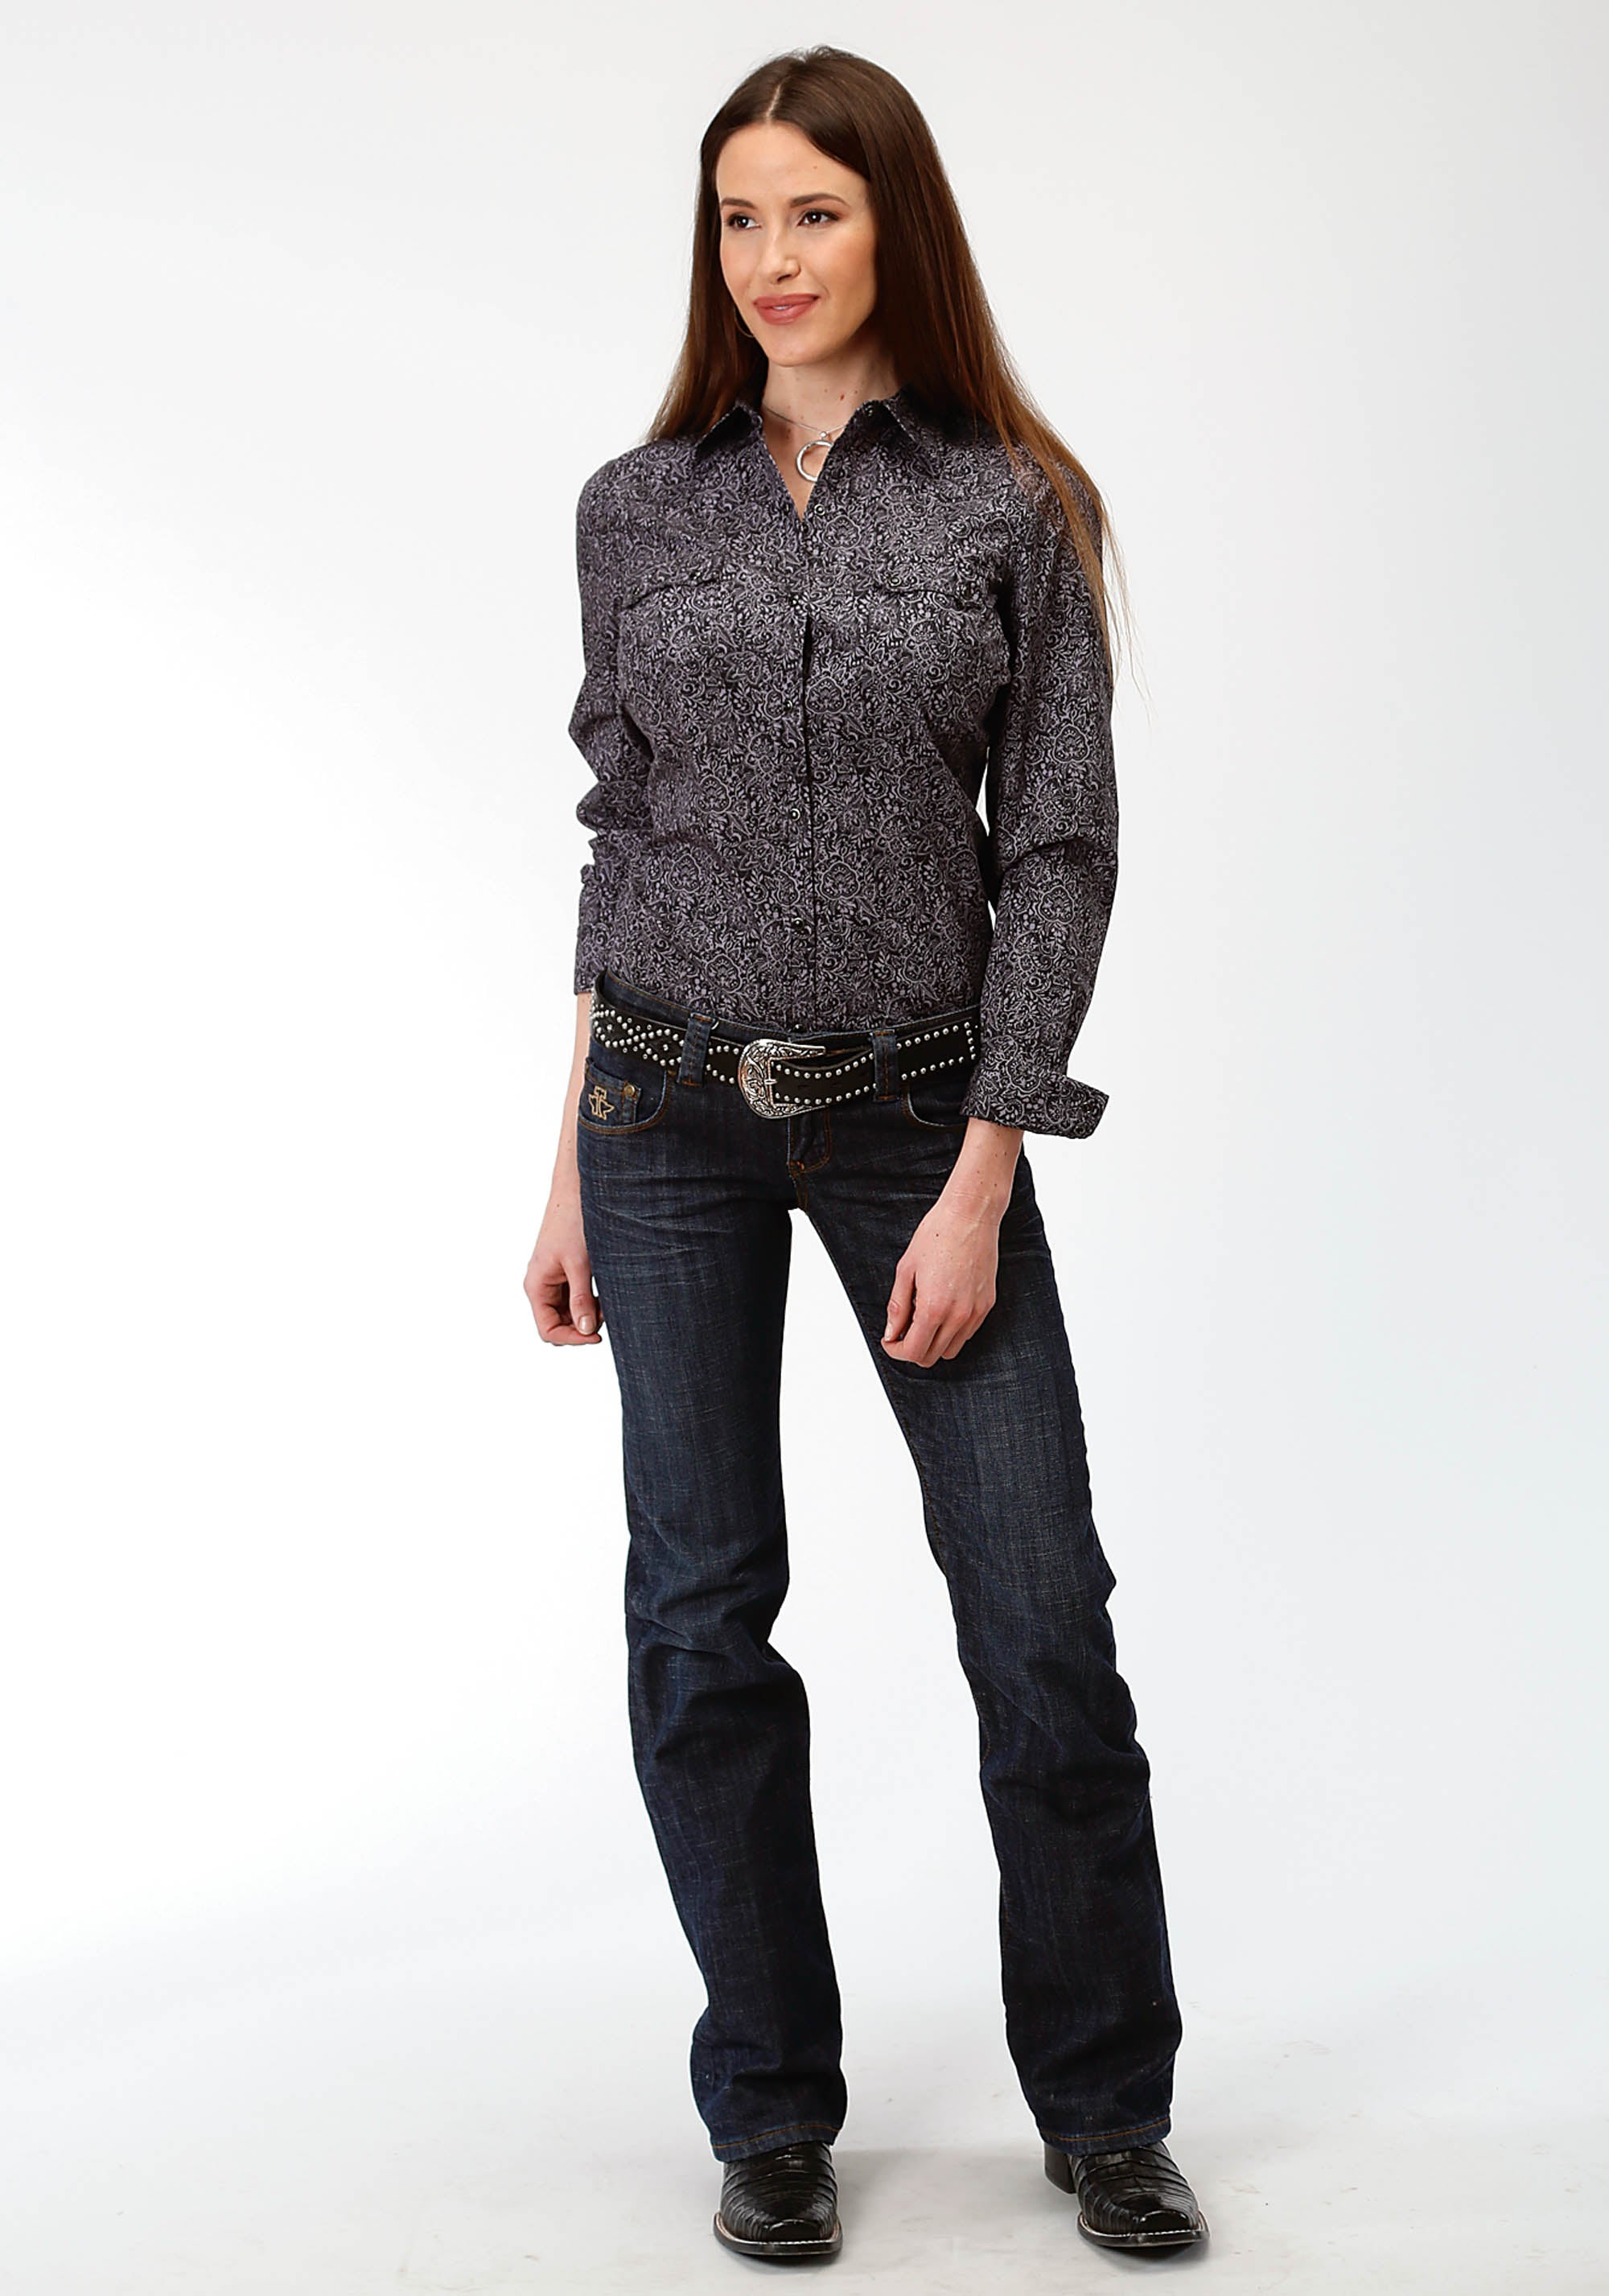 ROPER WOMENS BLACK 0757 BLACK PAISLEY WEST MADE COLLECTION LONG SLEEVE